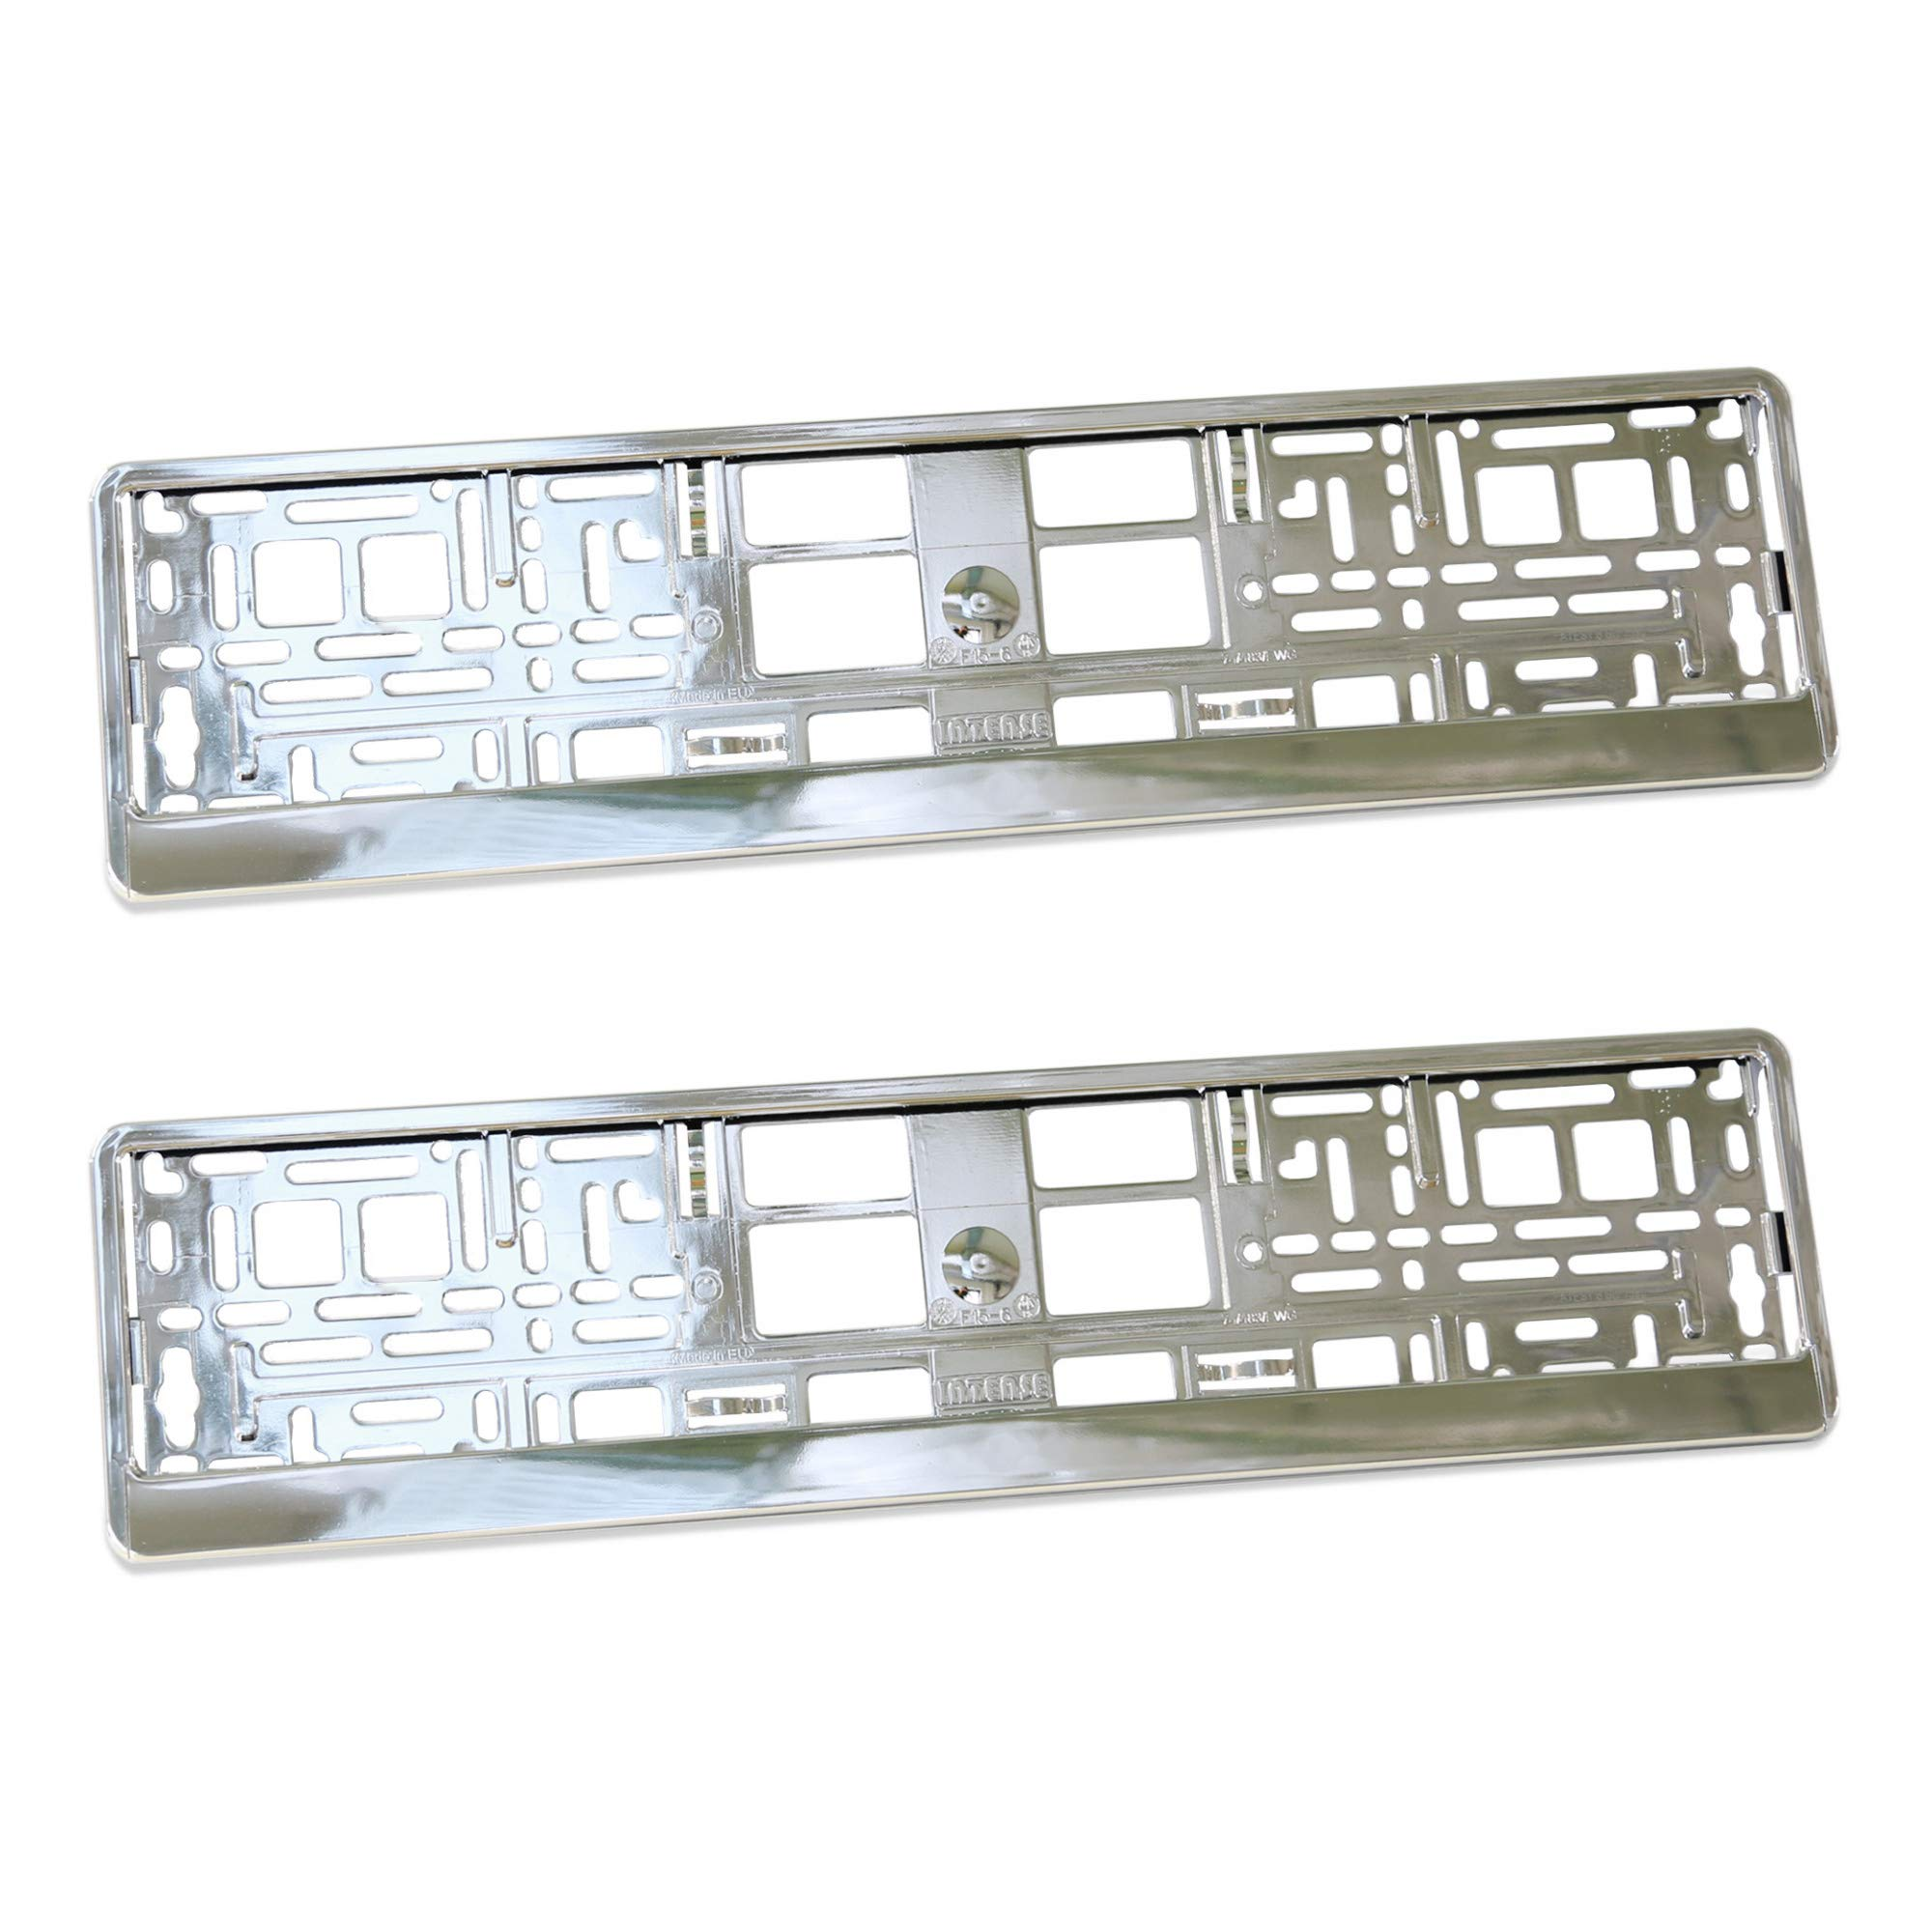 GROCAR Number Plate Surrounds Holder Frame 2 Pieces